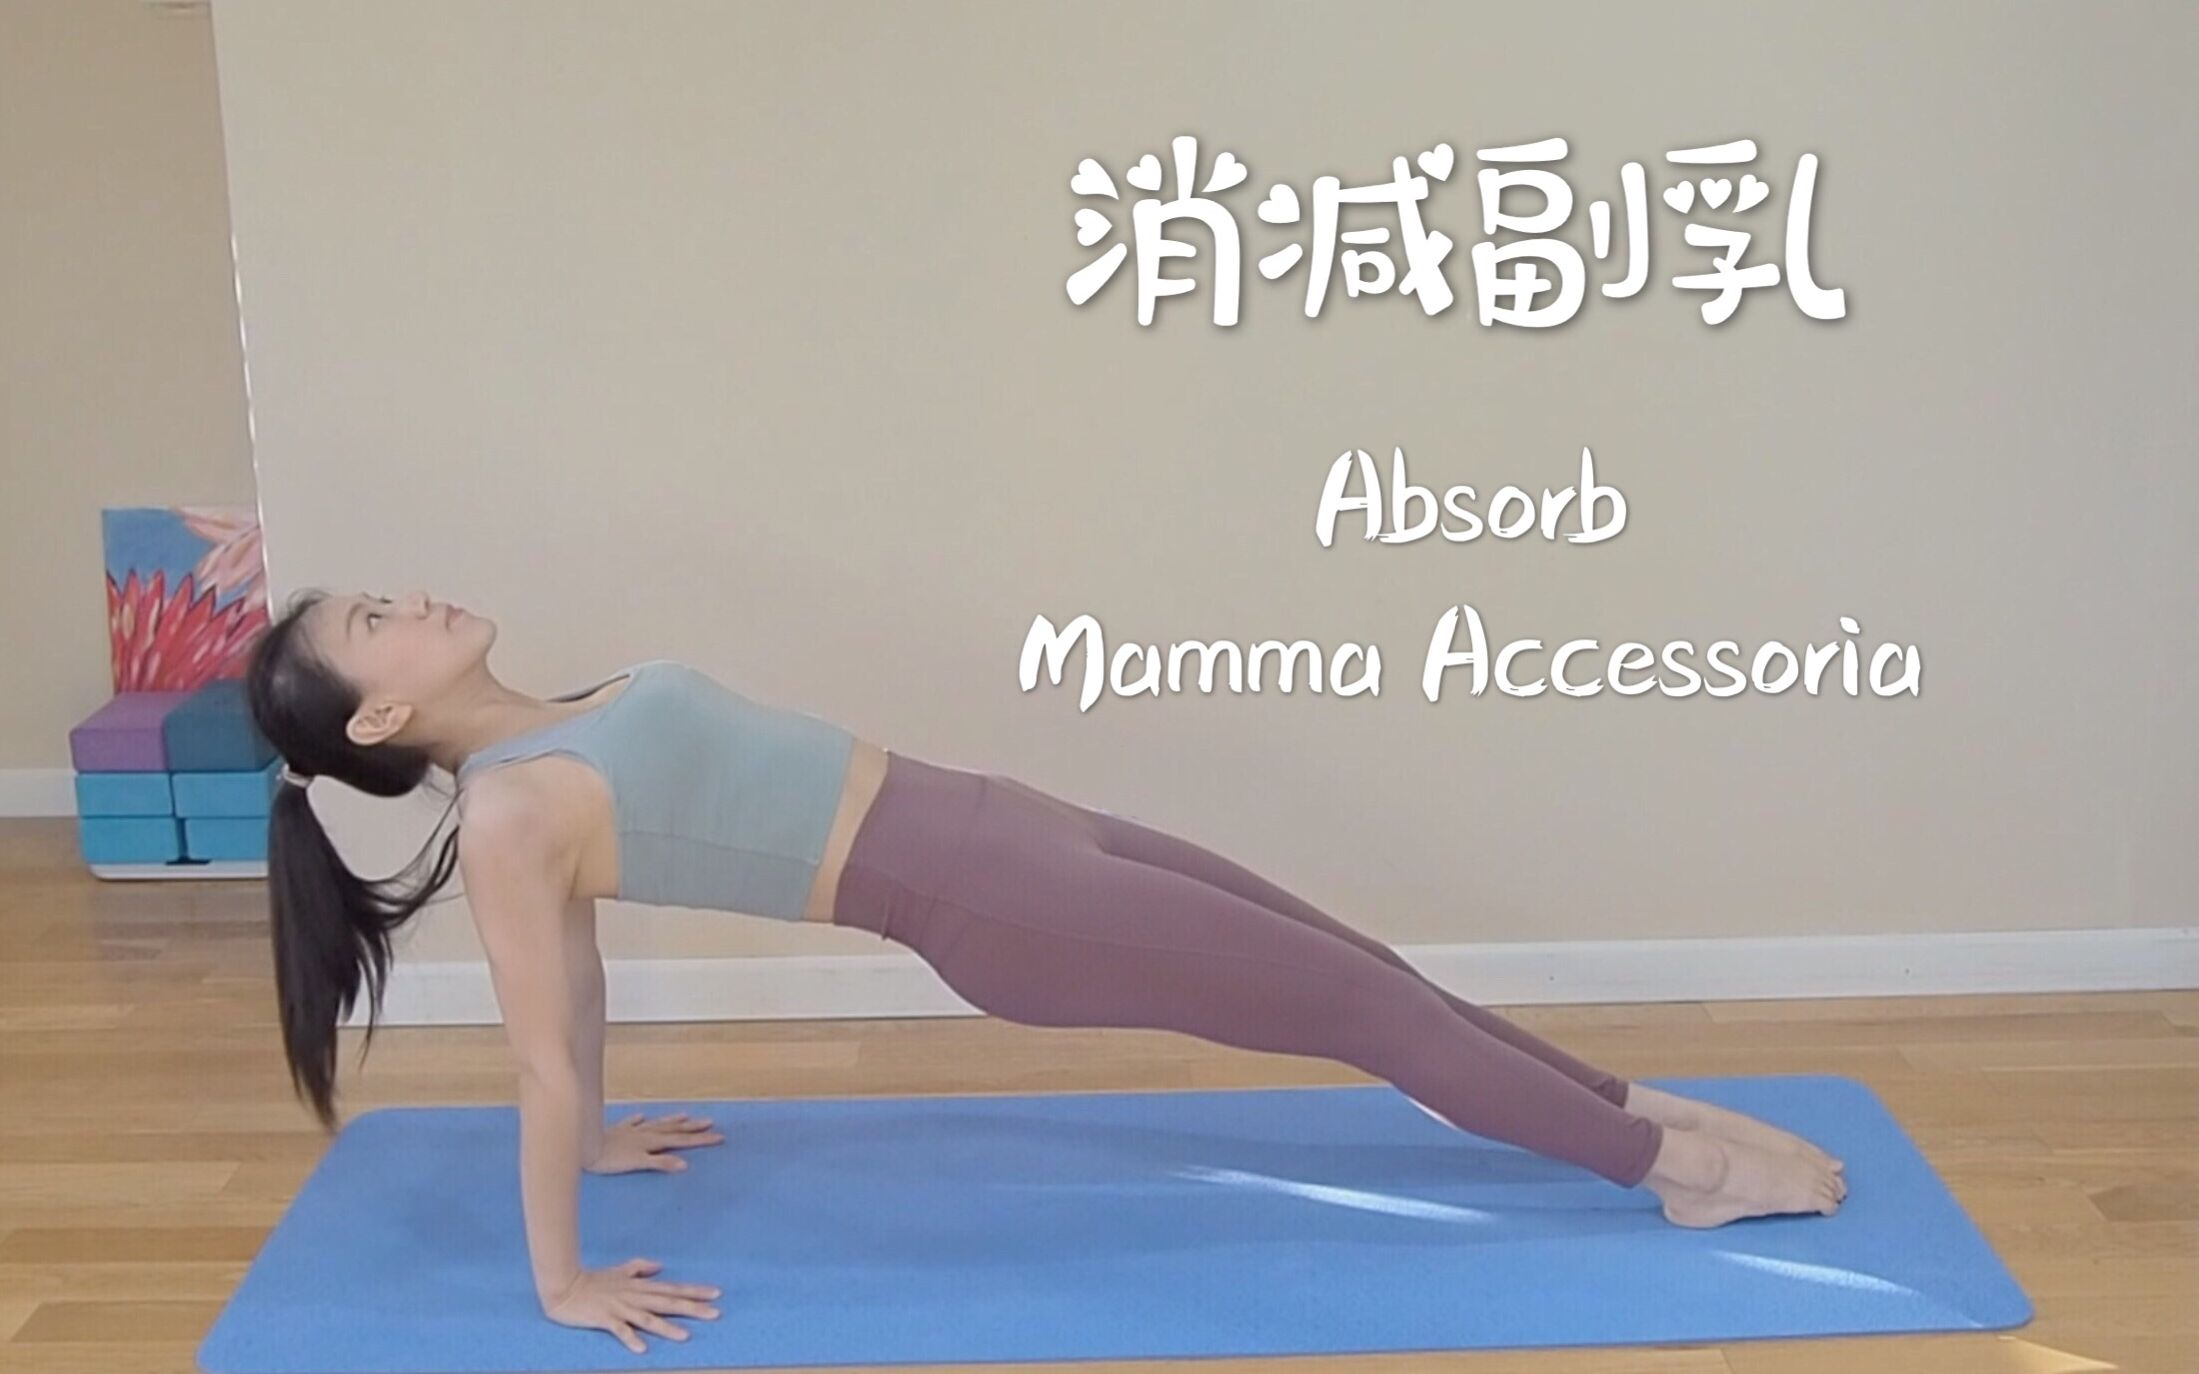 消减副乳拉伸瑜伽&开肩练习 Yoga to Absorb Mamma Accessoria【yogi_yadi】